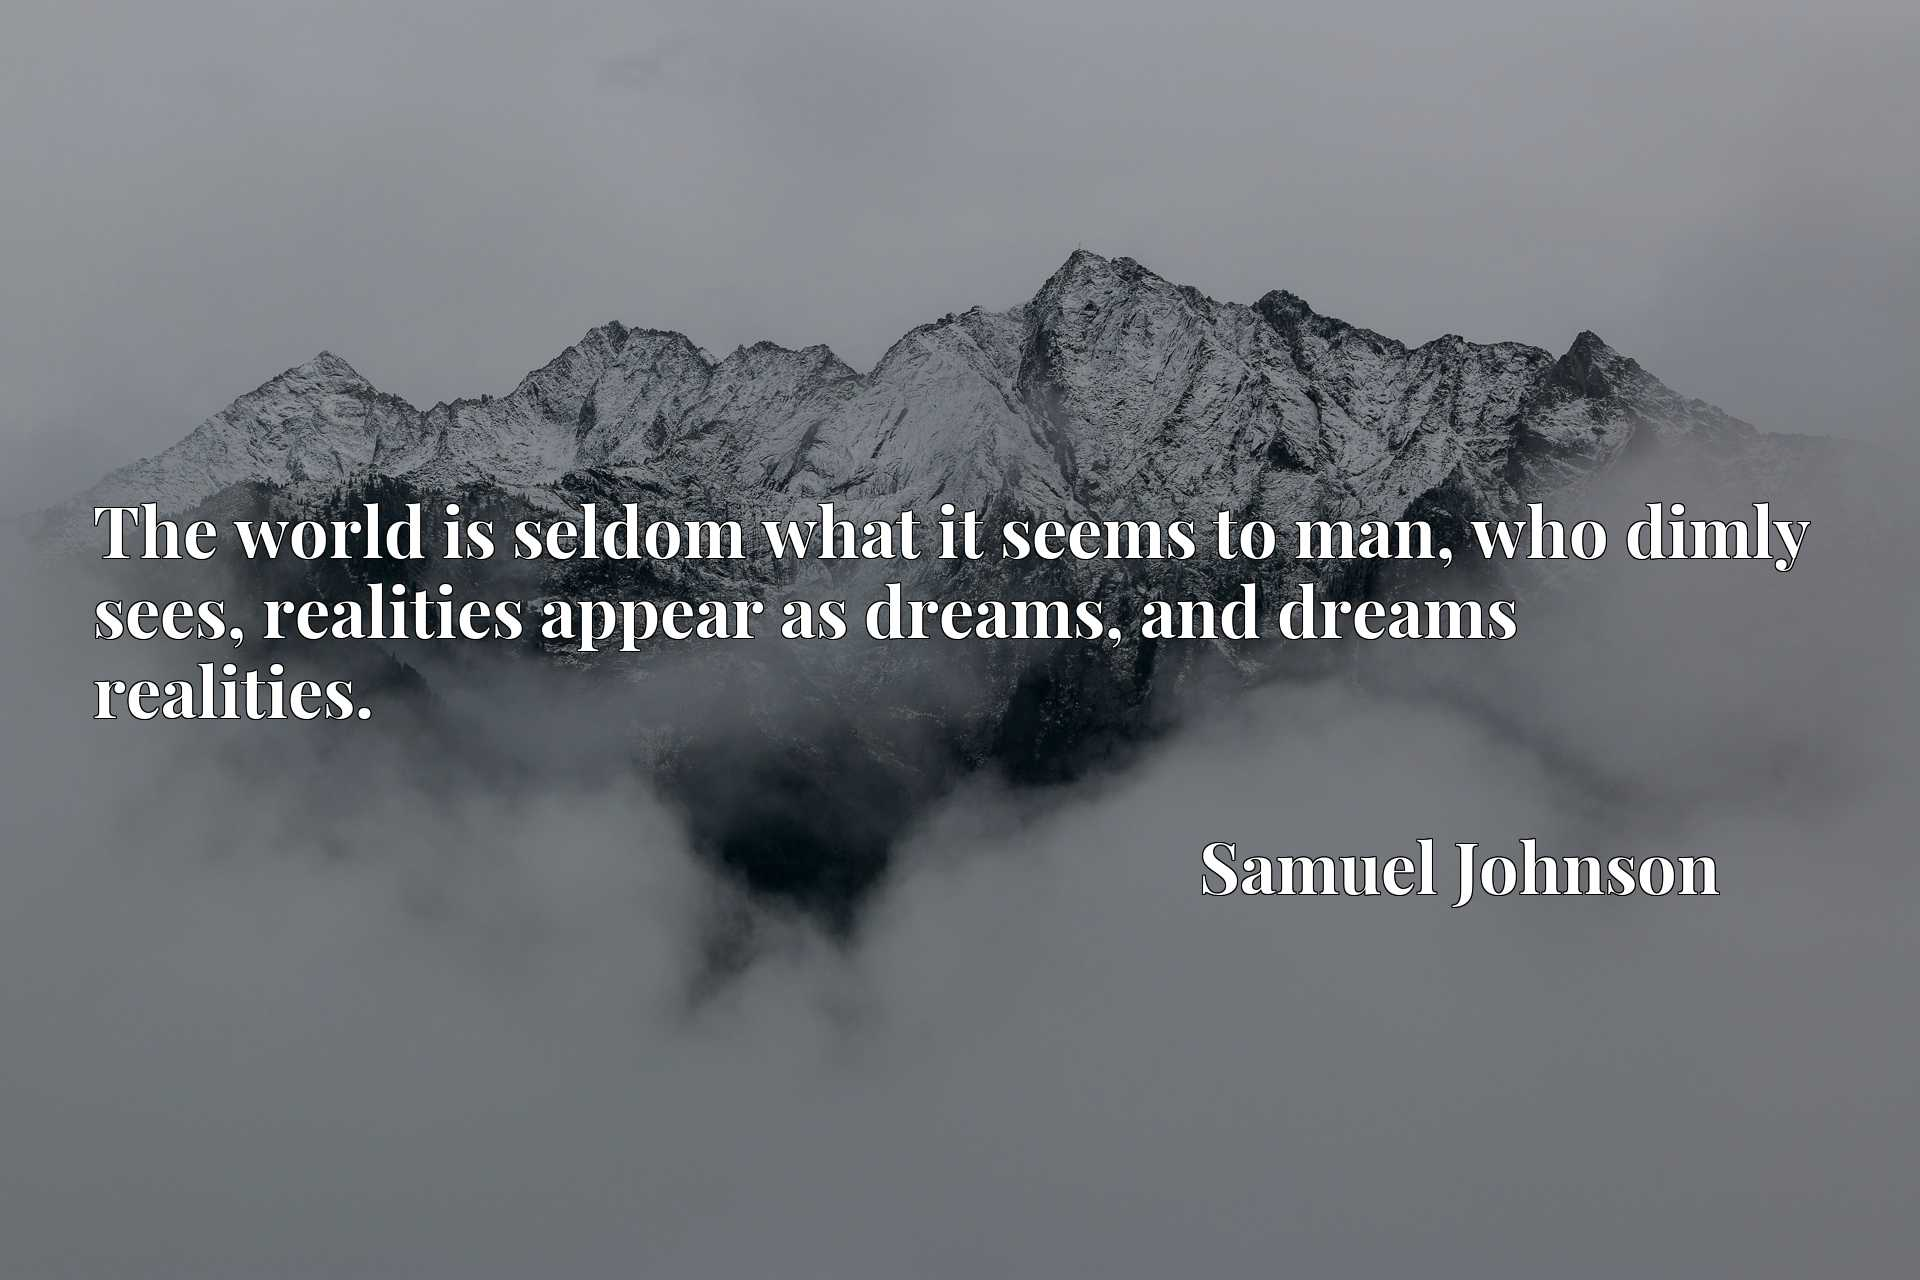 The world is seldom what it seems to man, who dimly sees, realities appear as dreams, and dreams realities.